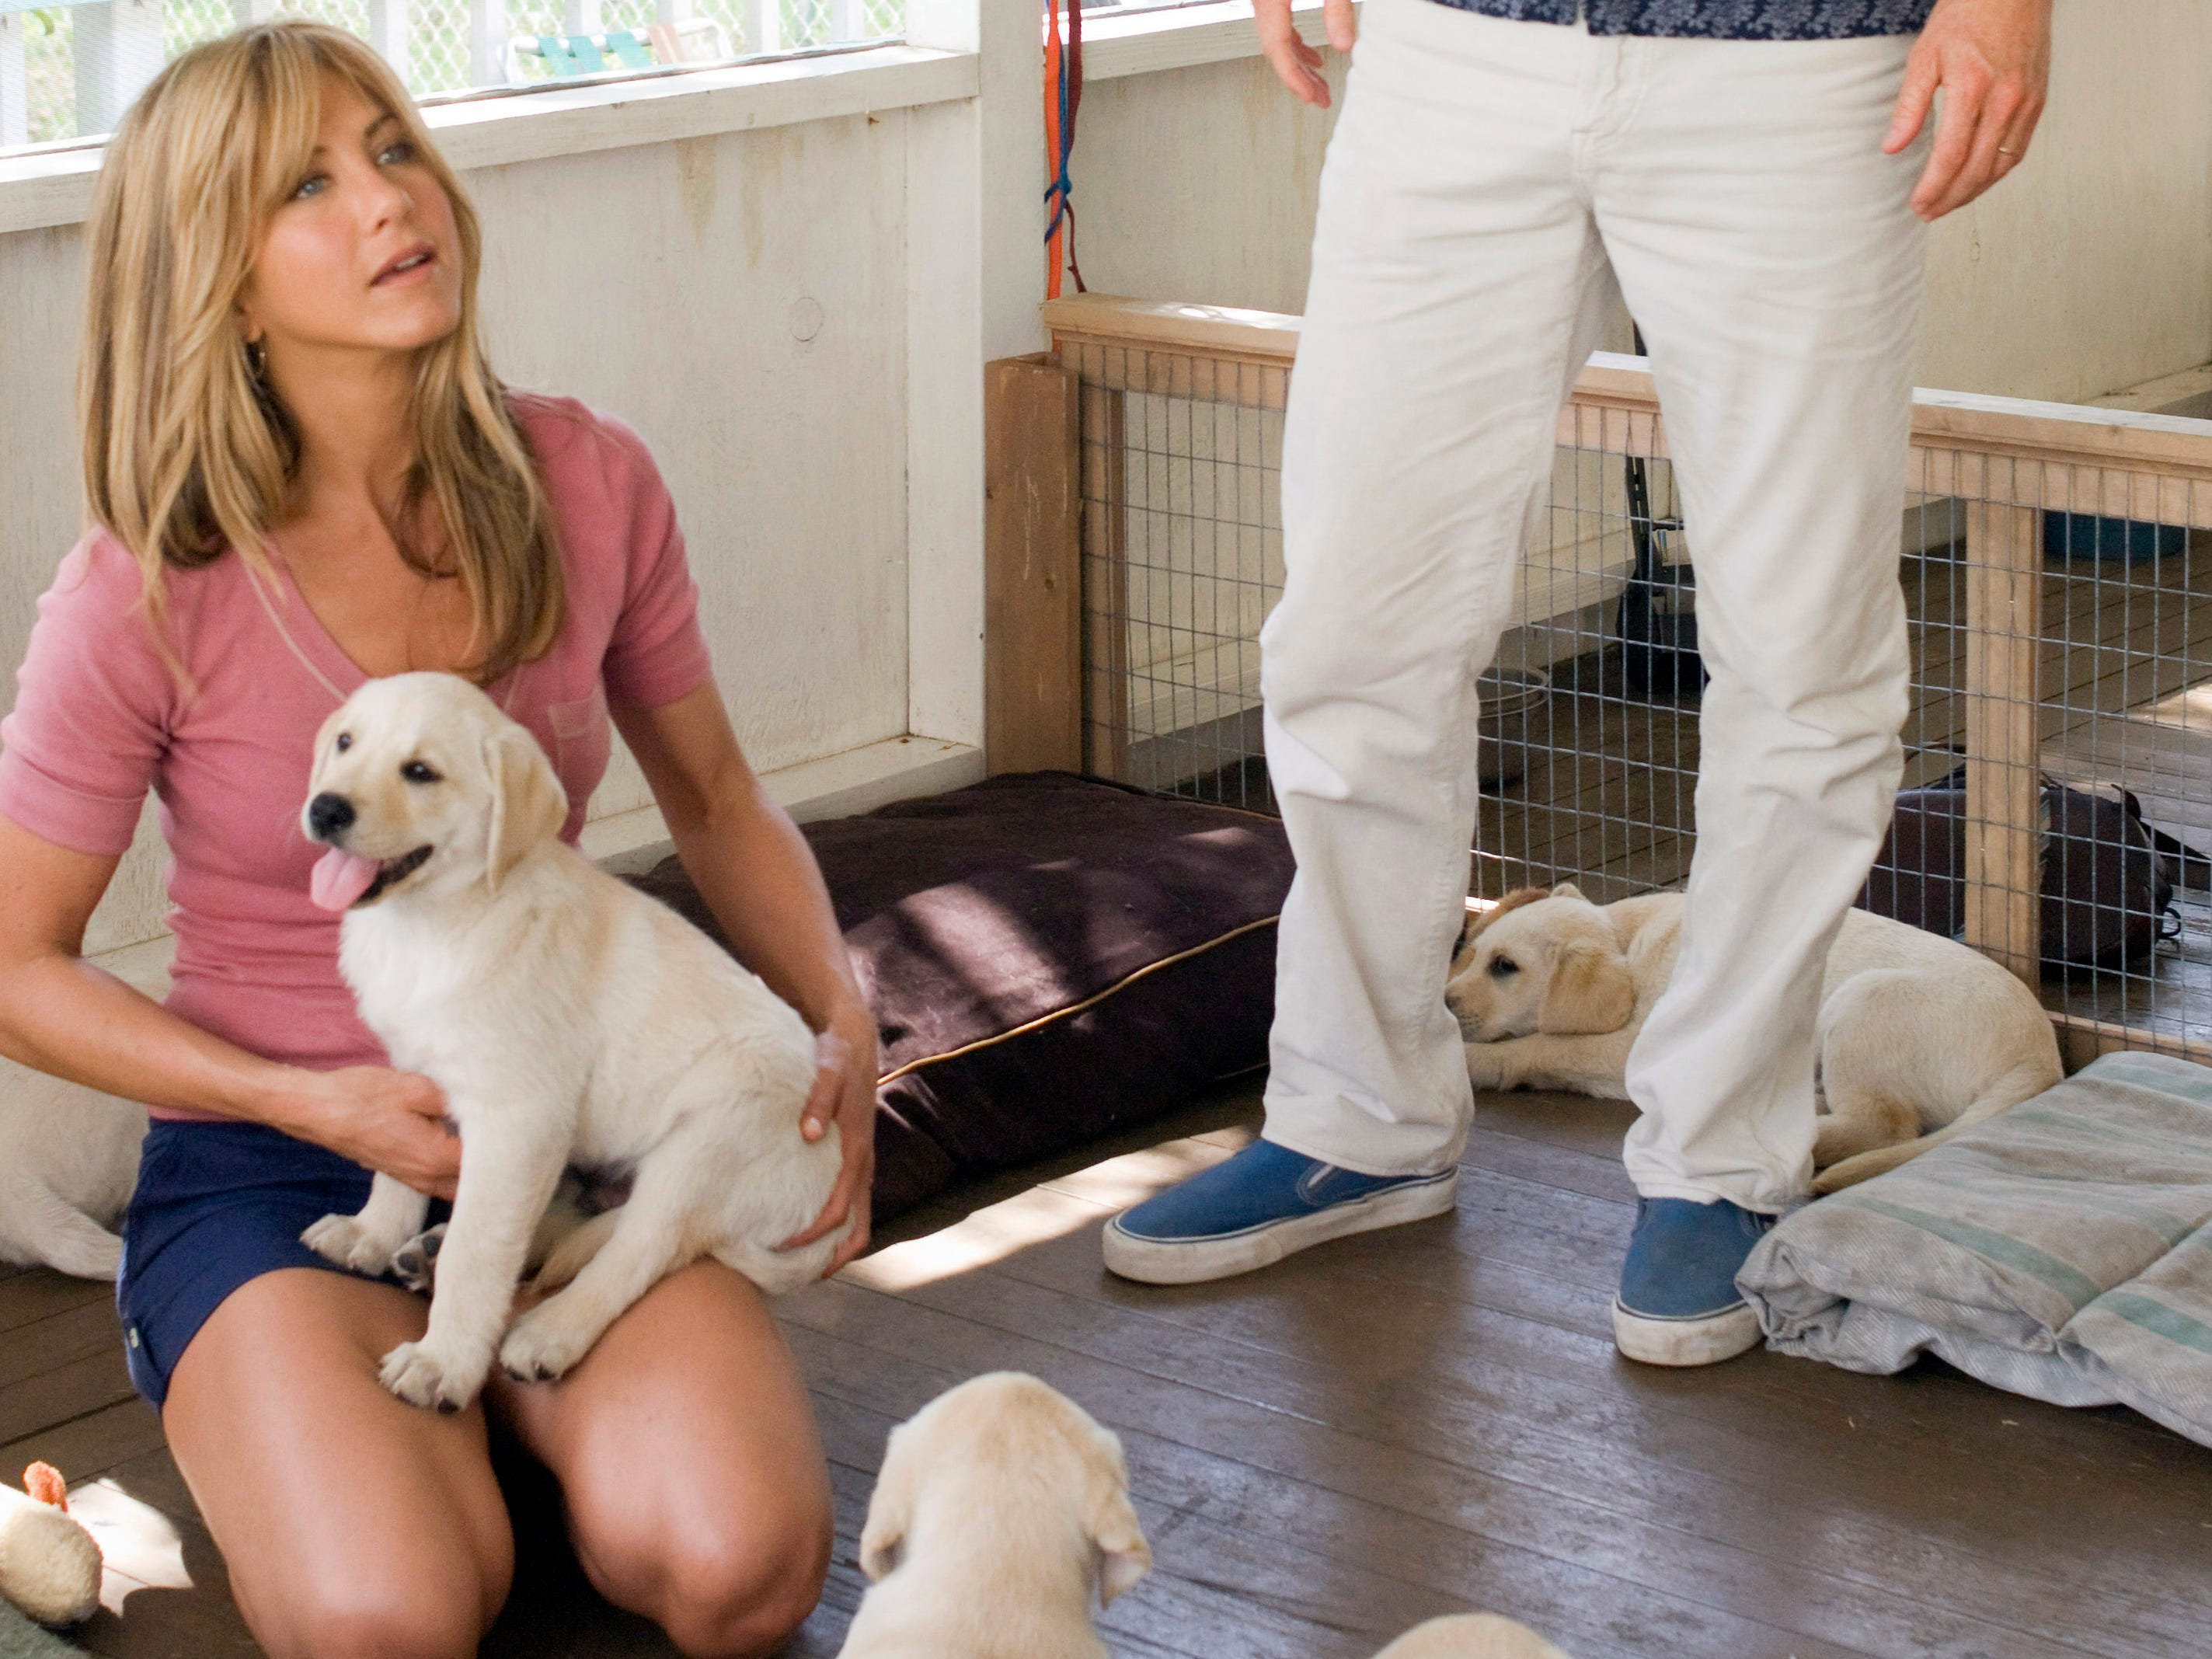 """In 2008, Aniston starred opposite Owen Wilson as the owners of rambunctious yellow Labrador retriever in the doggie dramedy """"Marley & Me."""""""